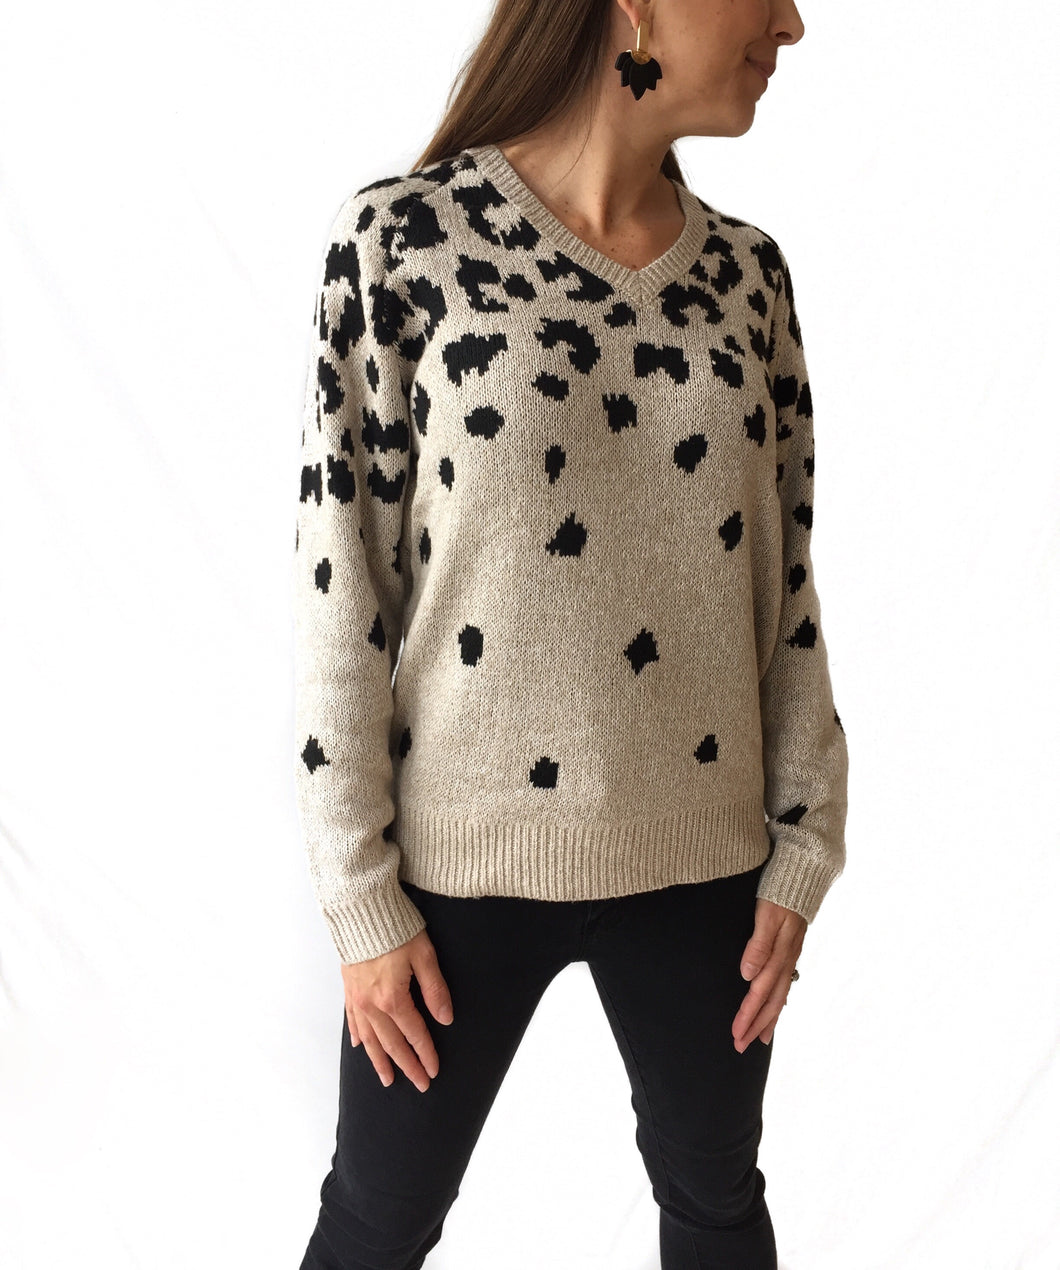 MR-Vneck Ivory/Blk Leopard Sweater